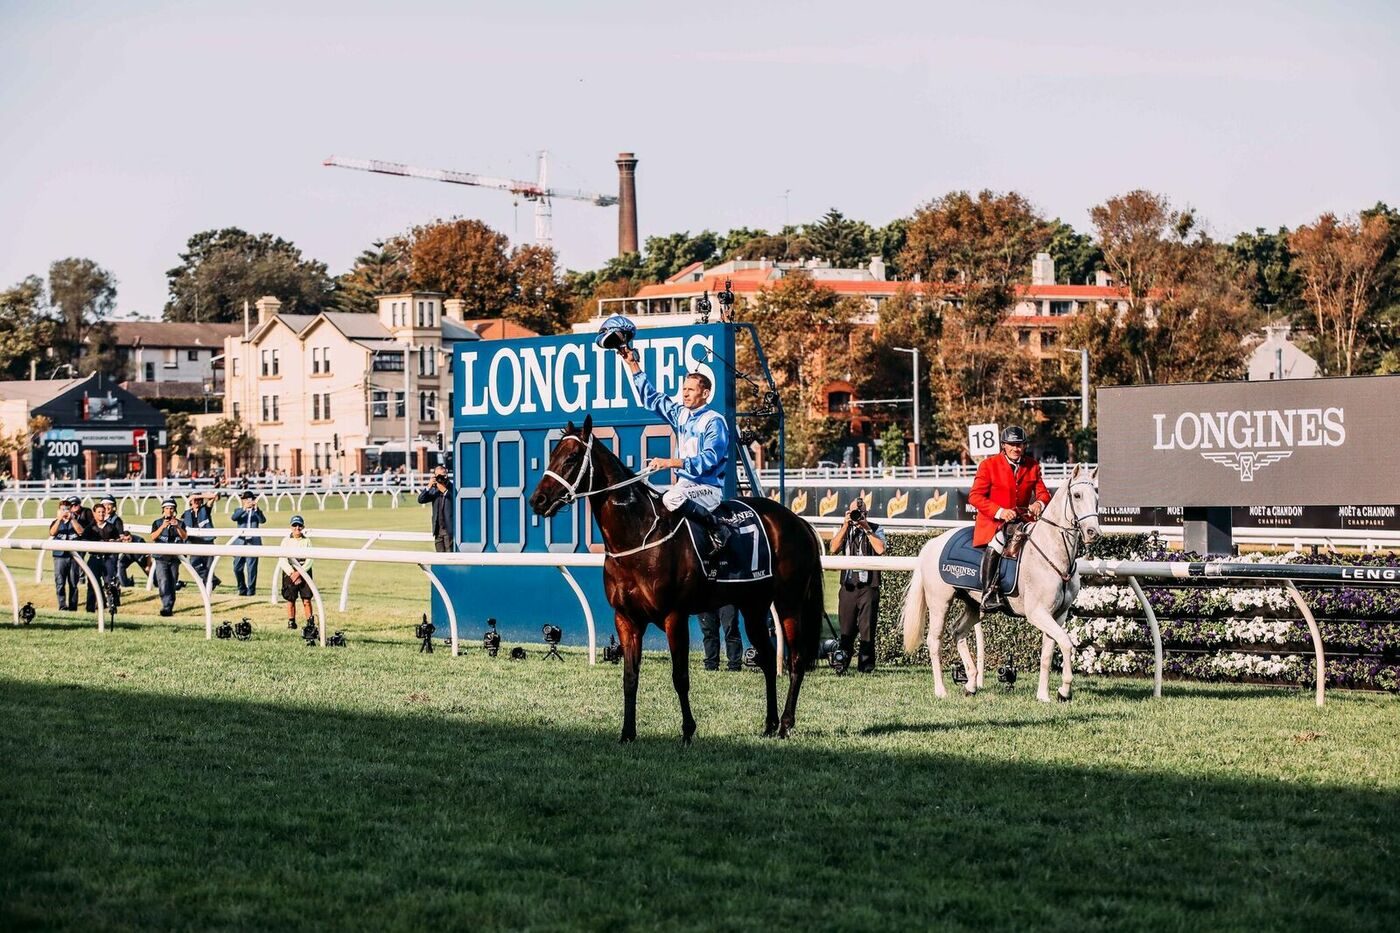 Longines Flat Racing Event: Unforgettable last victory of Winx at the Longines Queen Elizabeth Stakes 6